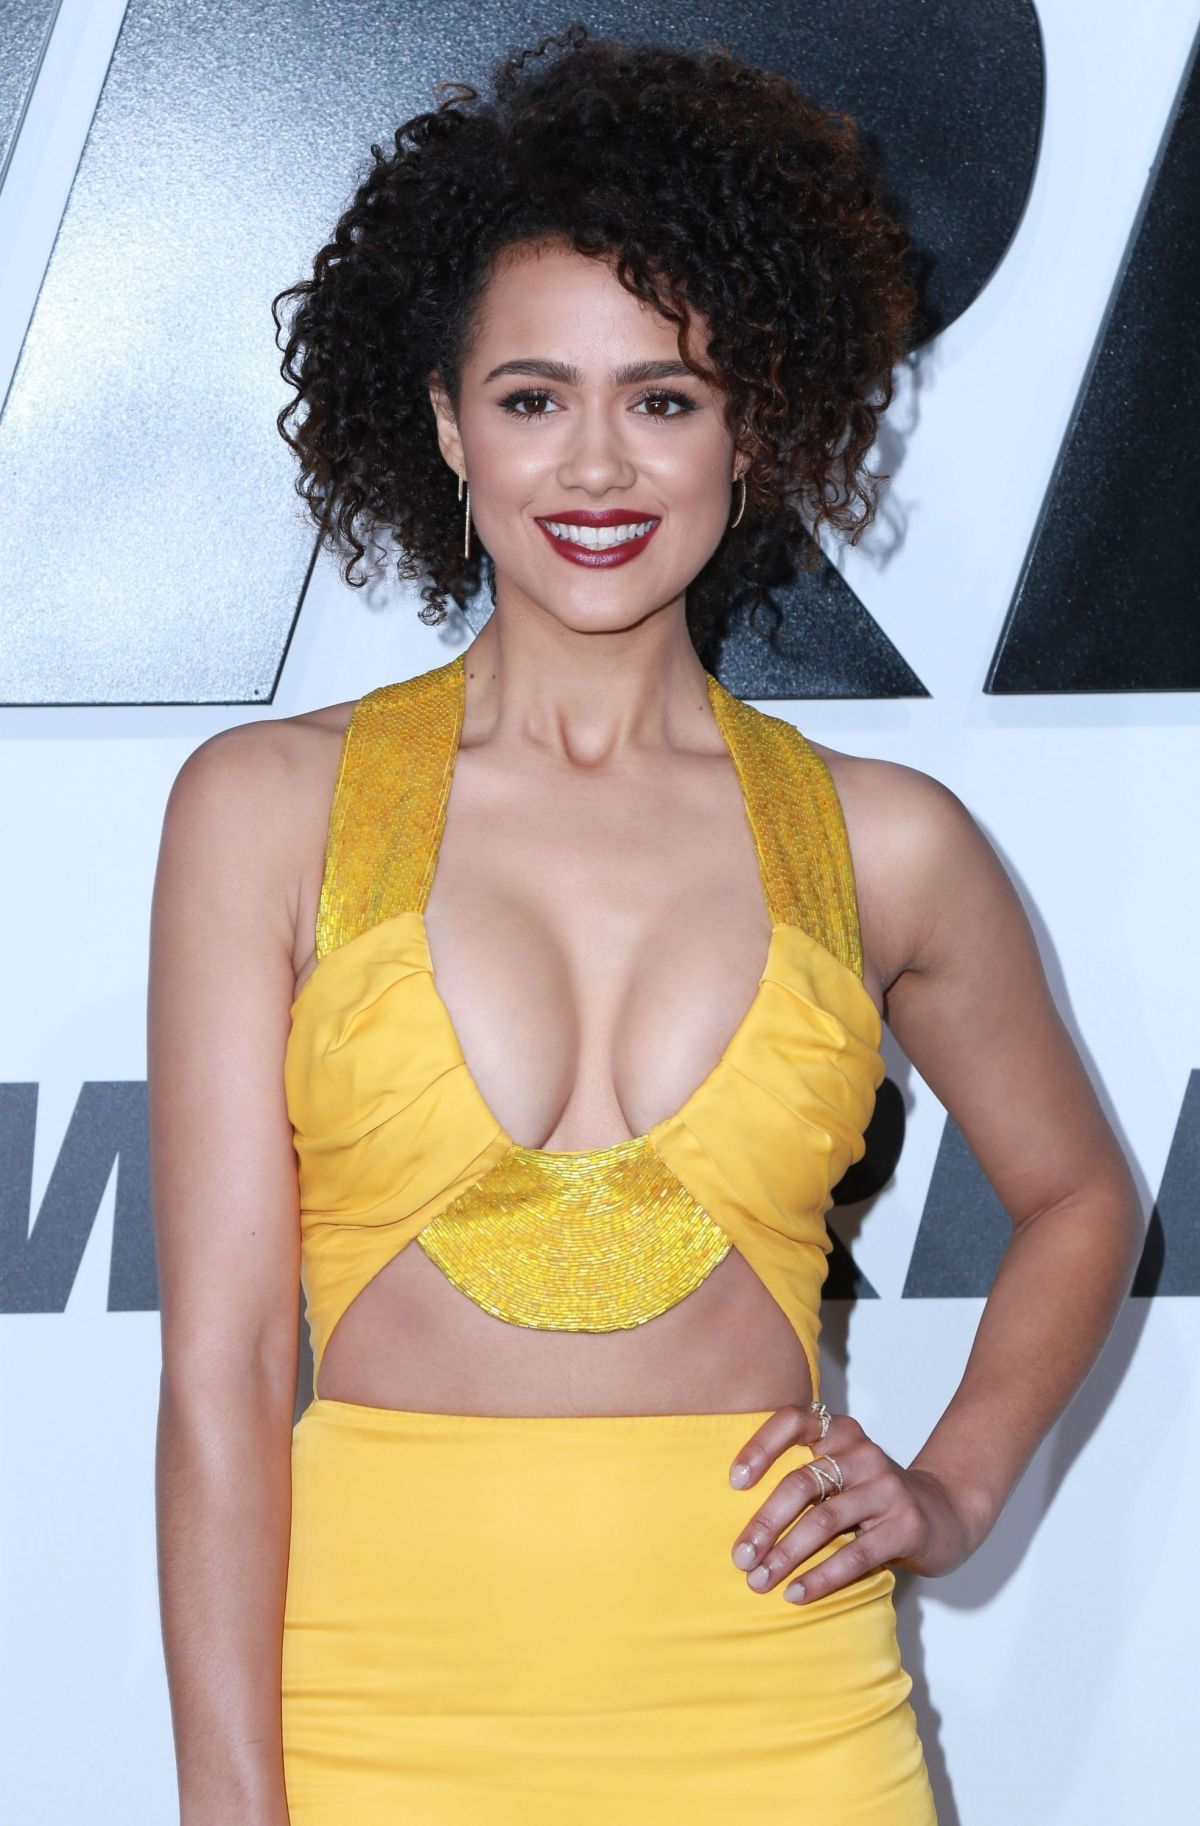 NATHALIE EMMANUEL at Furious 7 Premiere in Hollywood